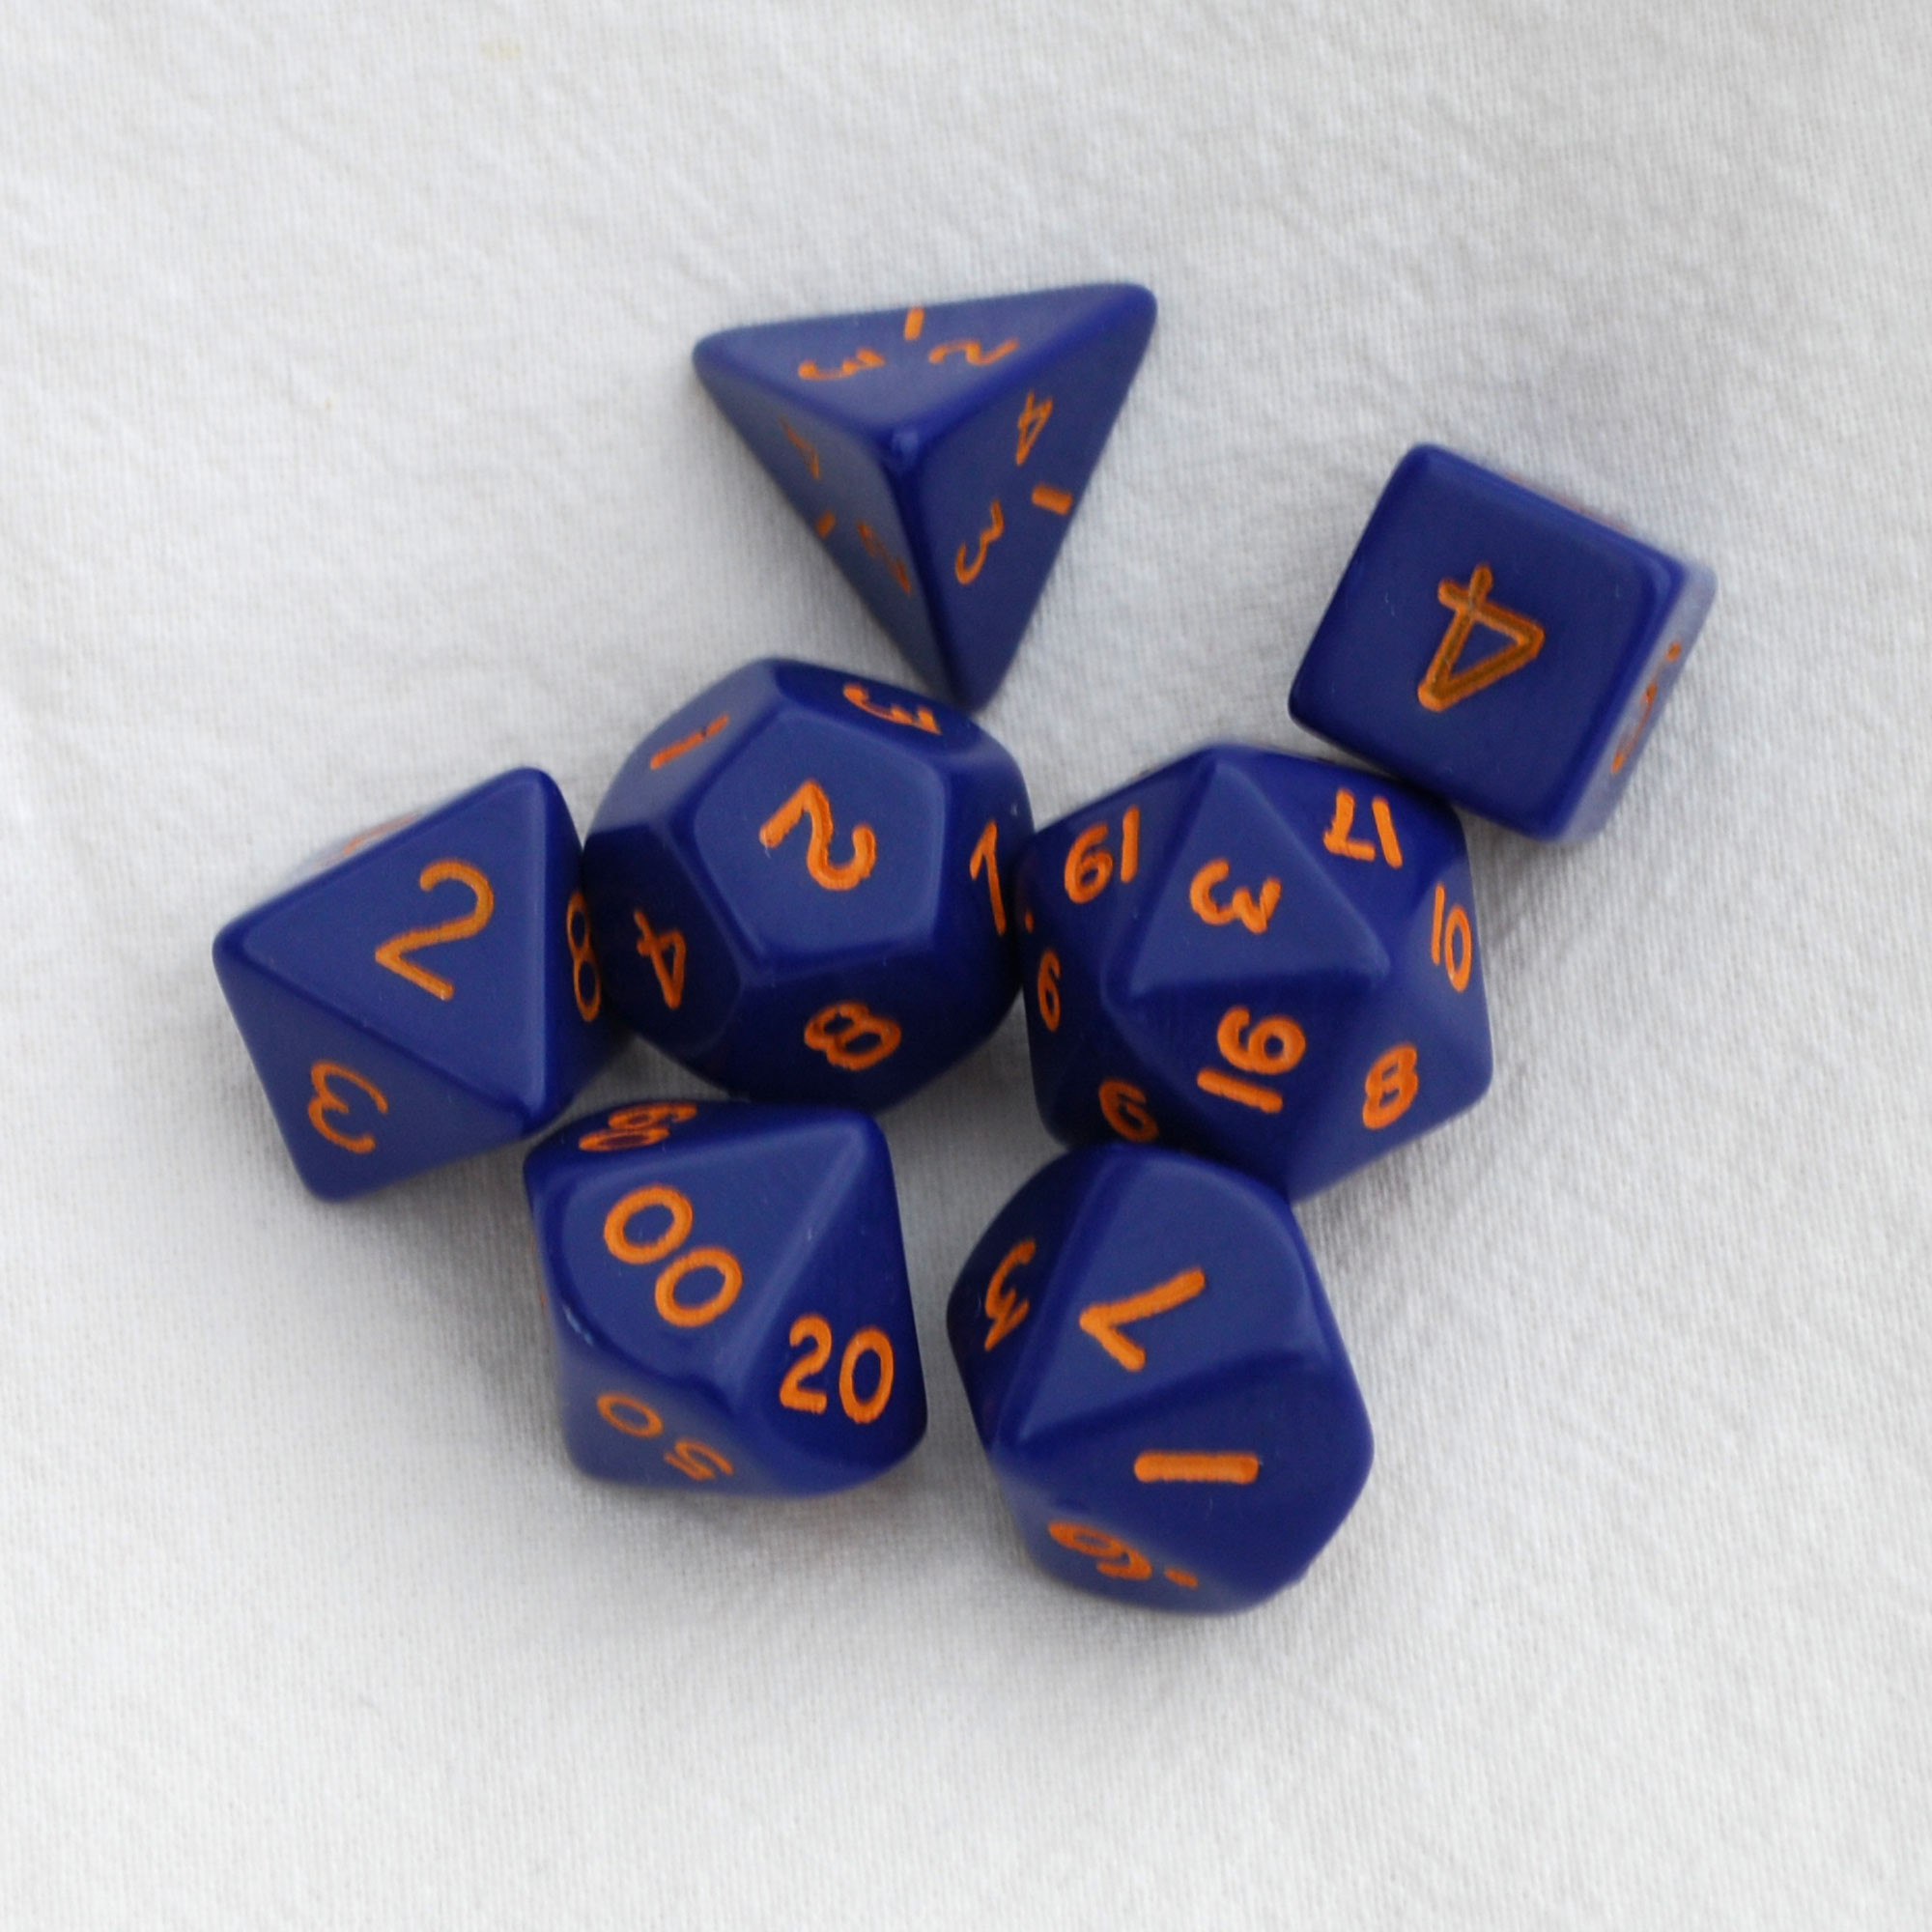 HD Opaque Dice Set